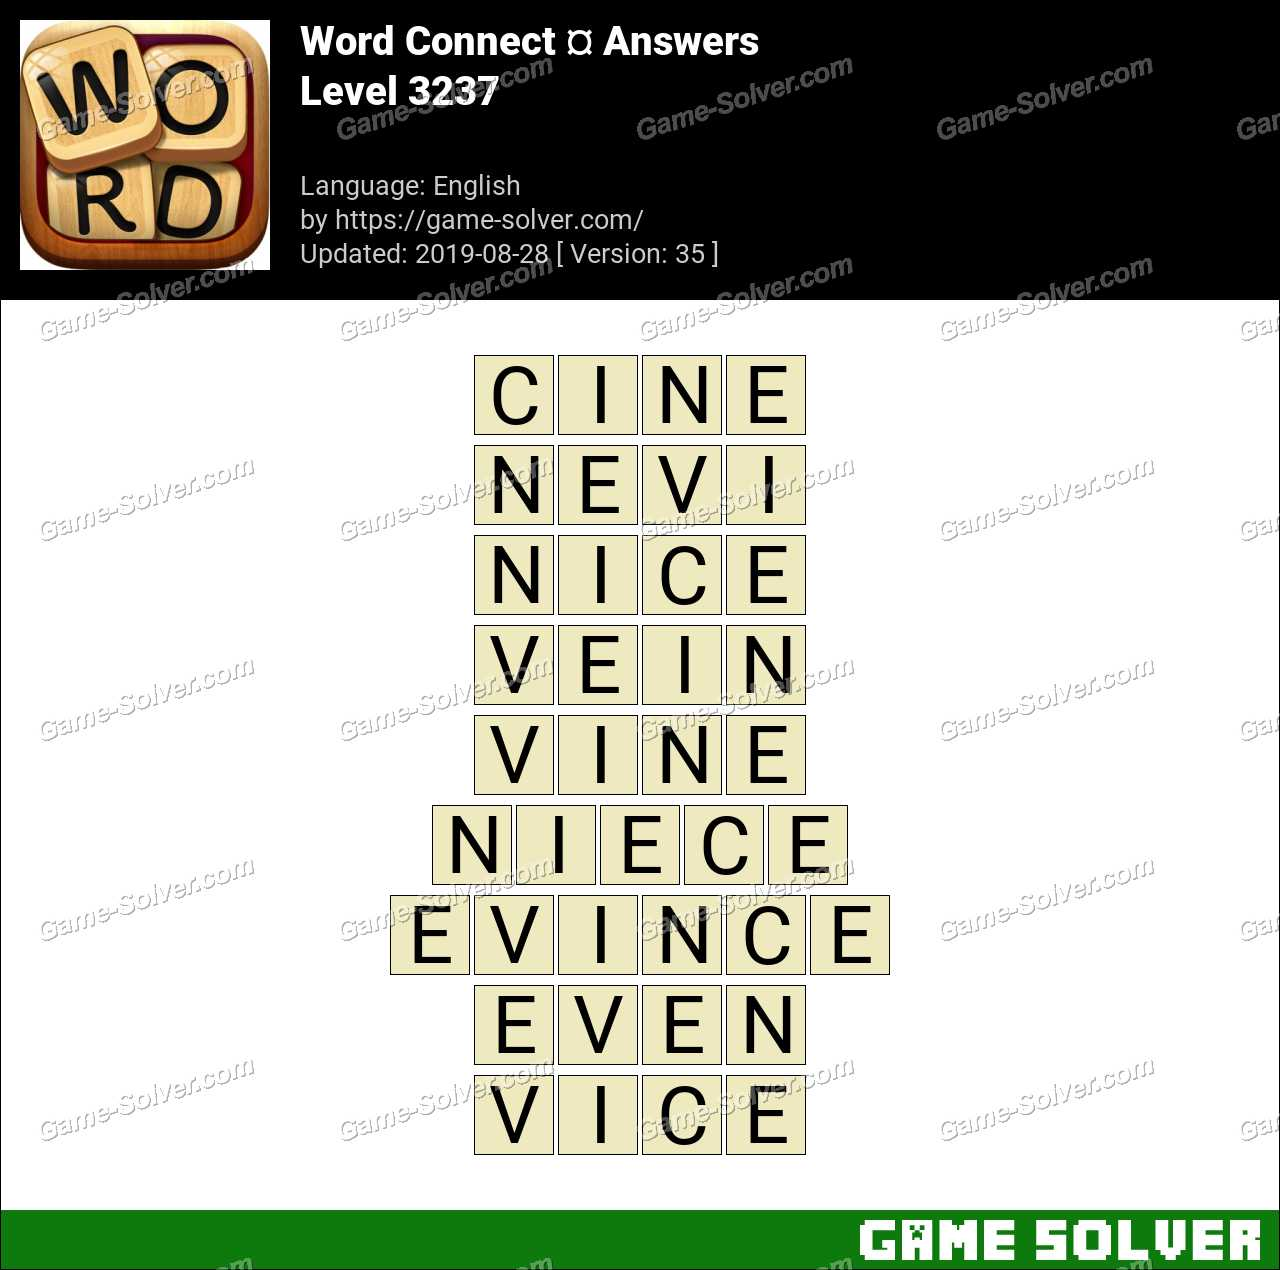 Word Connect Level 3237 Answers